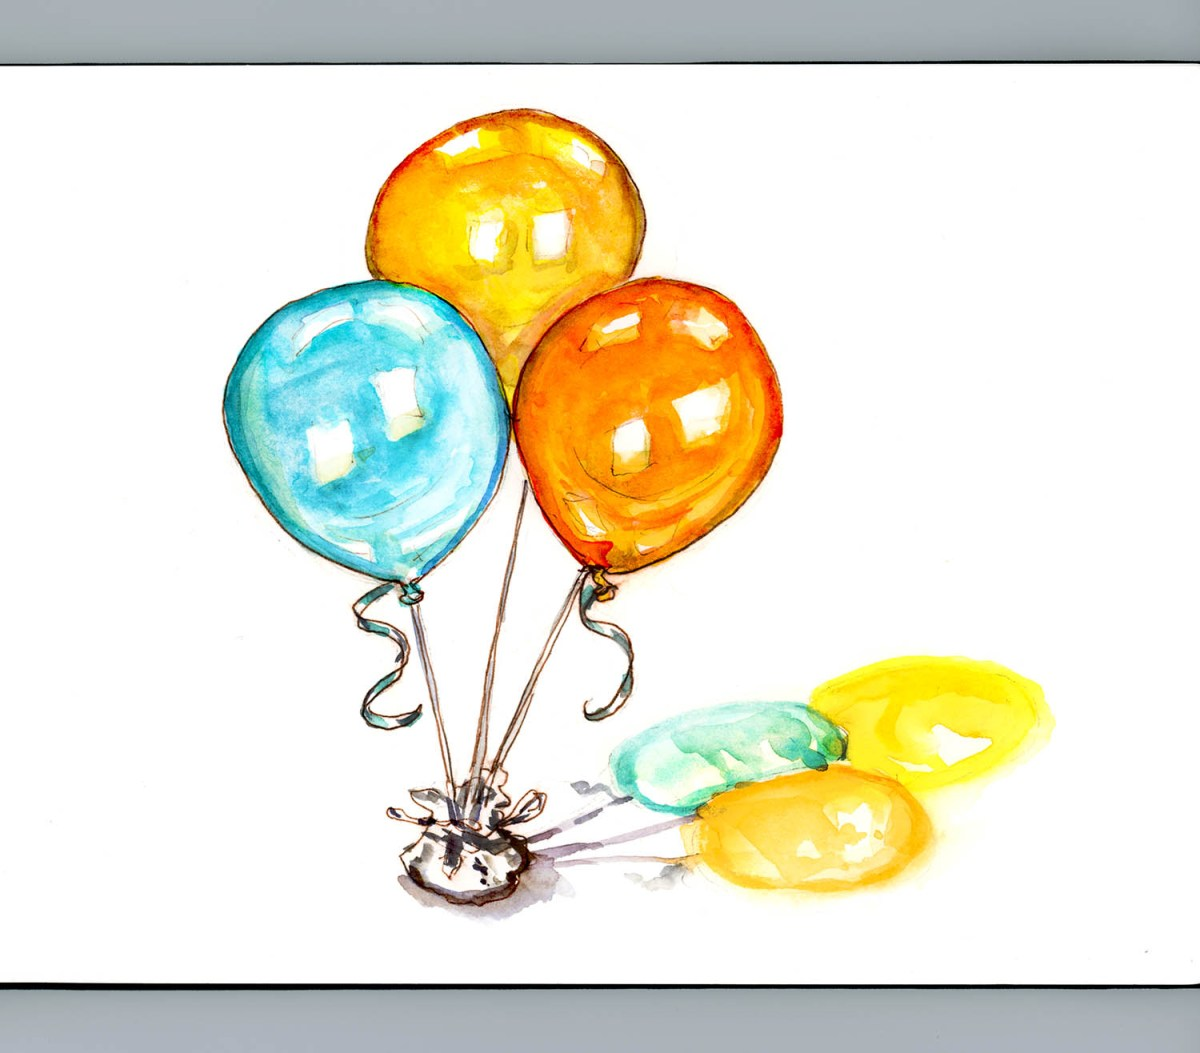 #WorldWatercolorGroup - Day 12 - Quick Little Balloons - Doodlewash